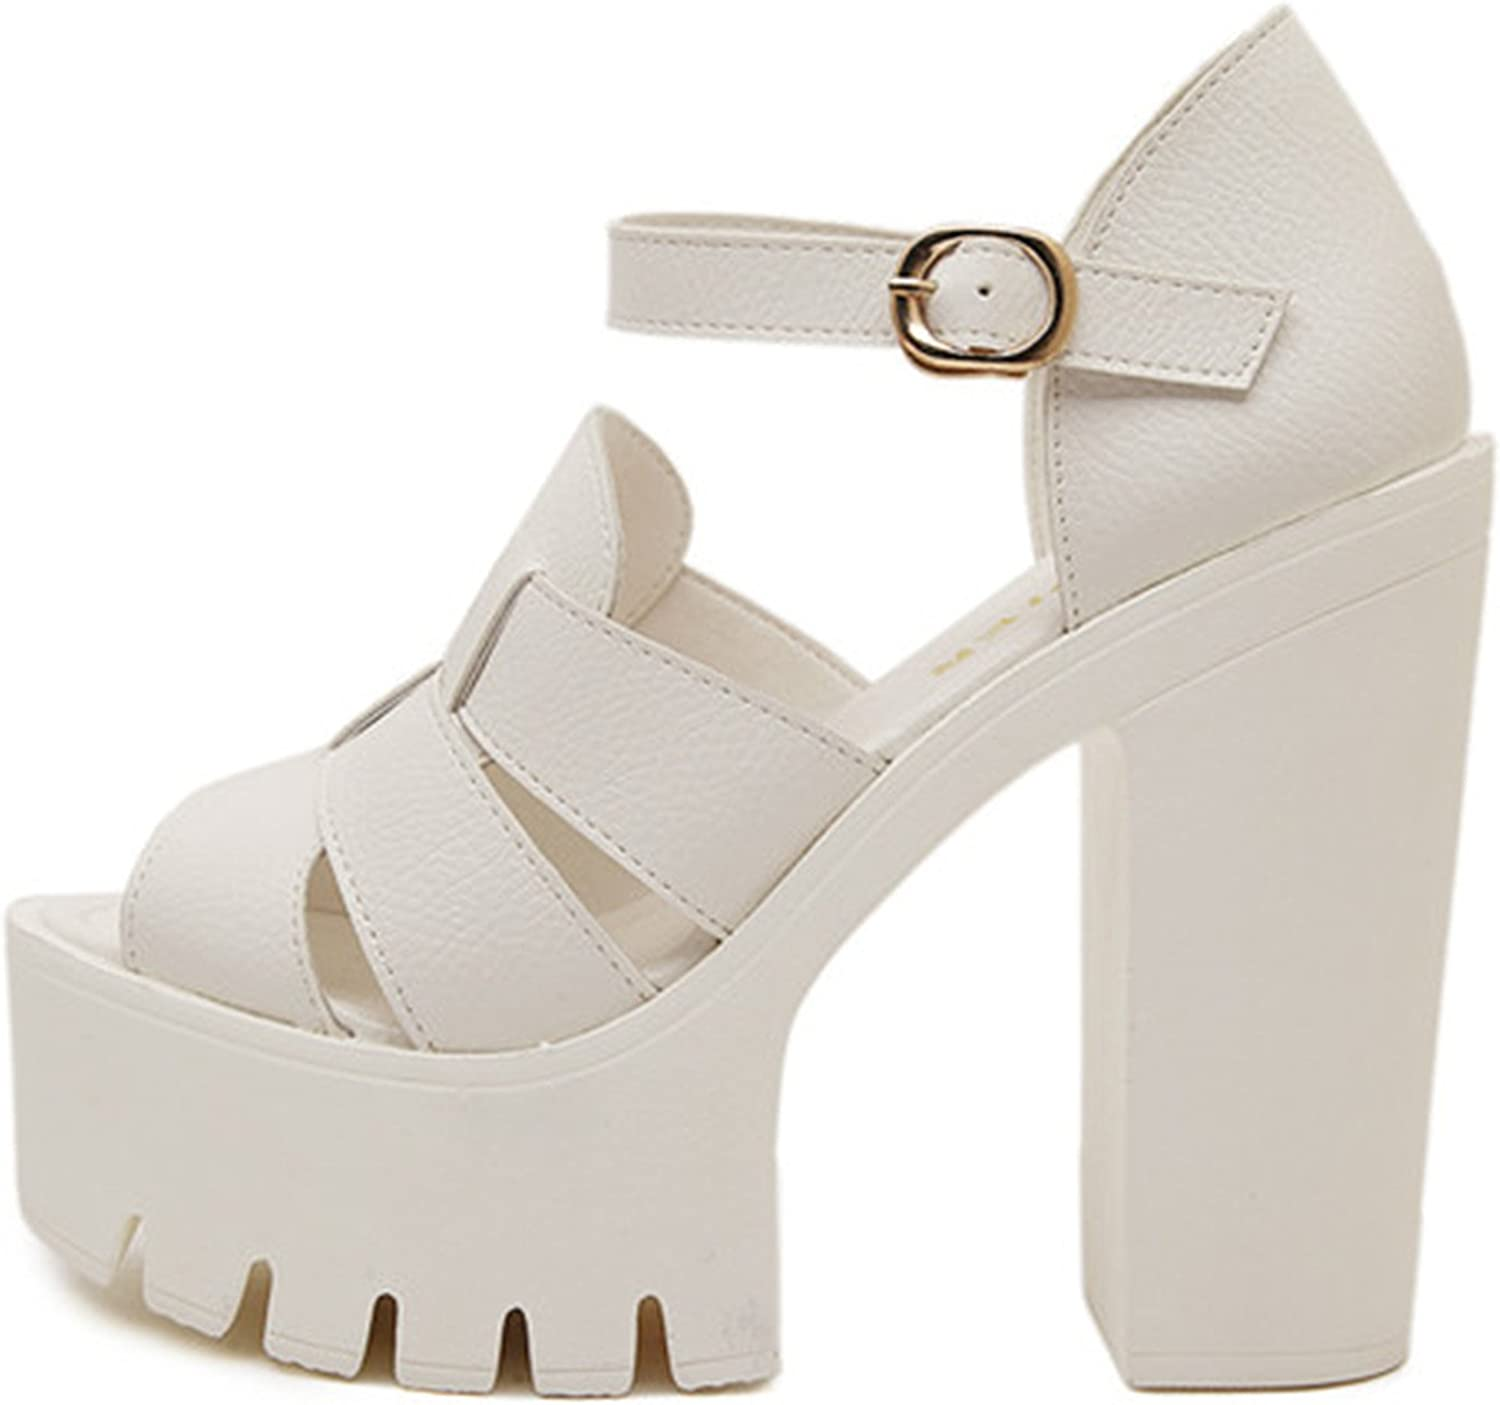 Terrcmaily Fashion Summer Wedges Platform Sandals Women Black and White Open Toe high Heels Sandals